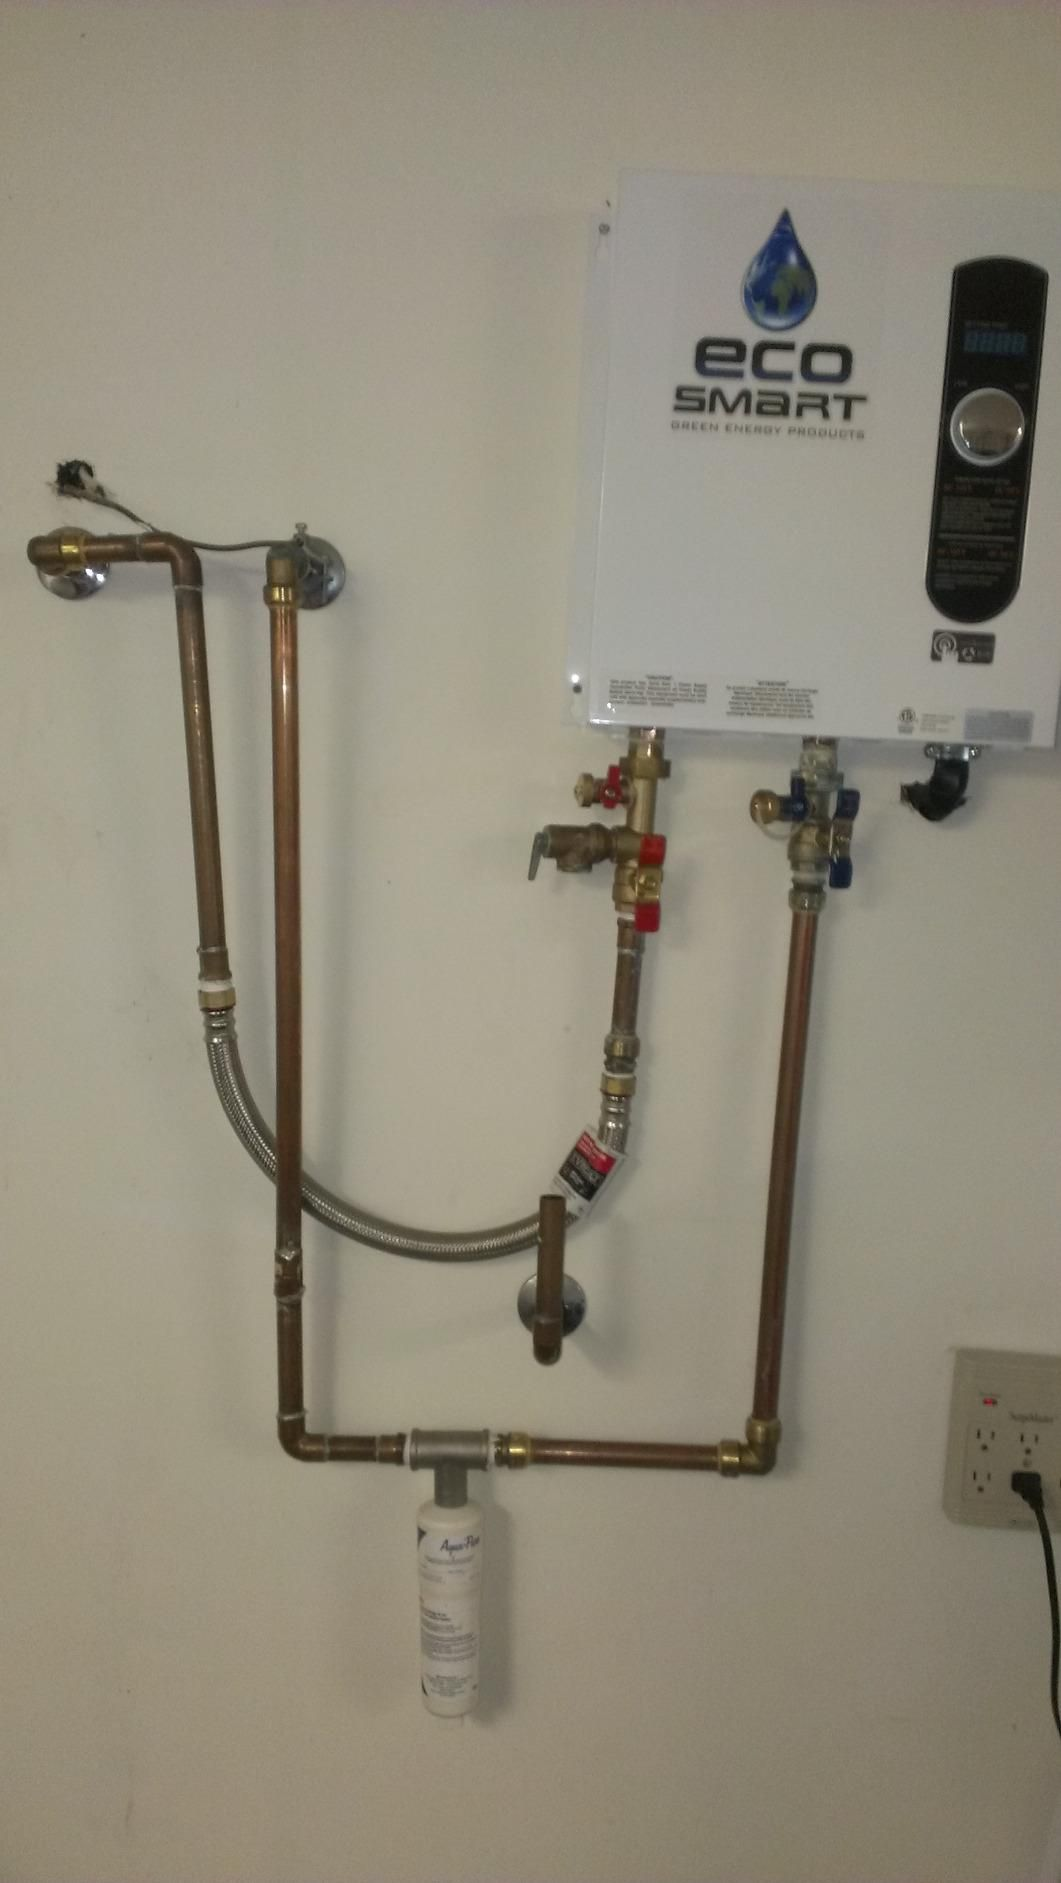 Best Tankless Water Heater Reviews In 2020 Tankless Water Heater Water Heater Water Heating Systems